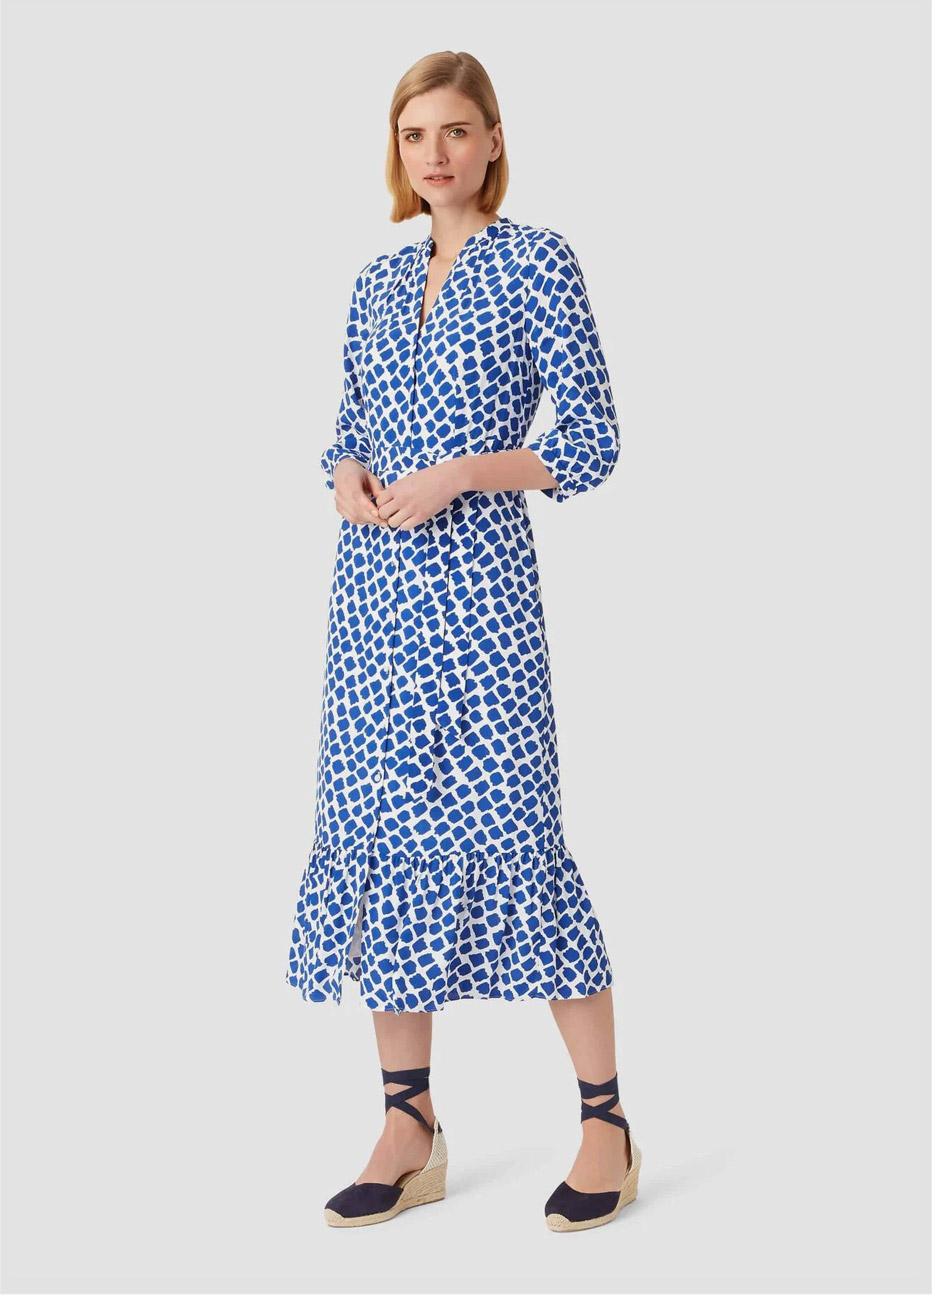 Midi length shirt dress with frill details in blue and white worn with espadrille wedge sandals by Hobbs.